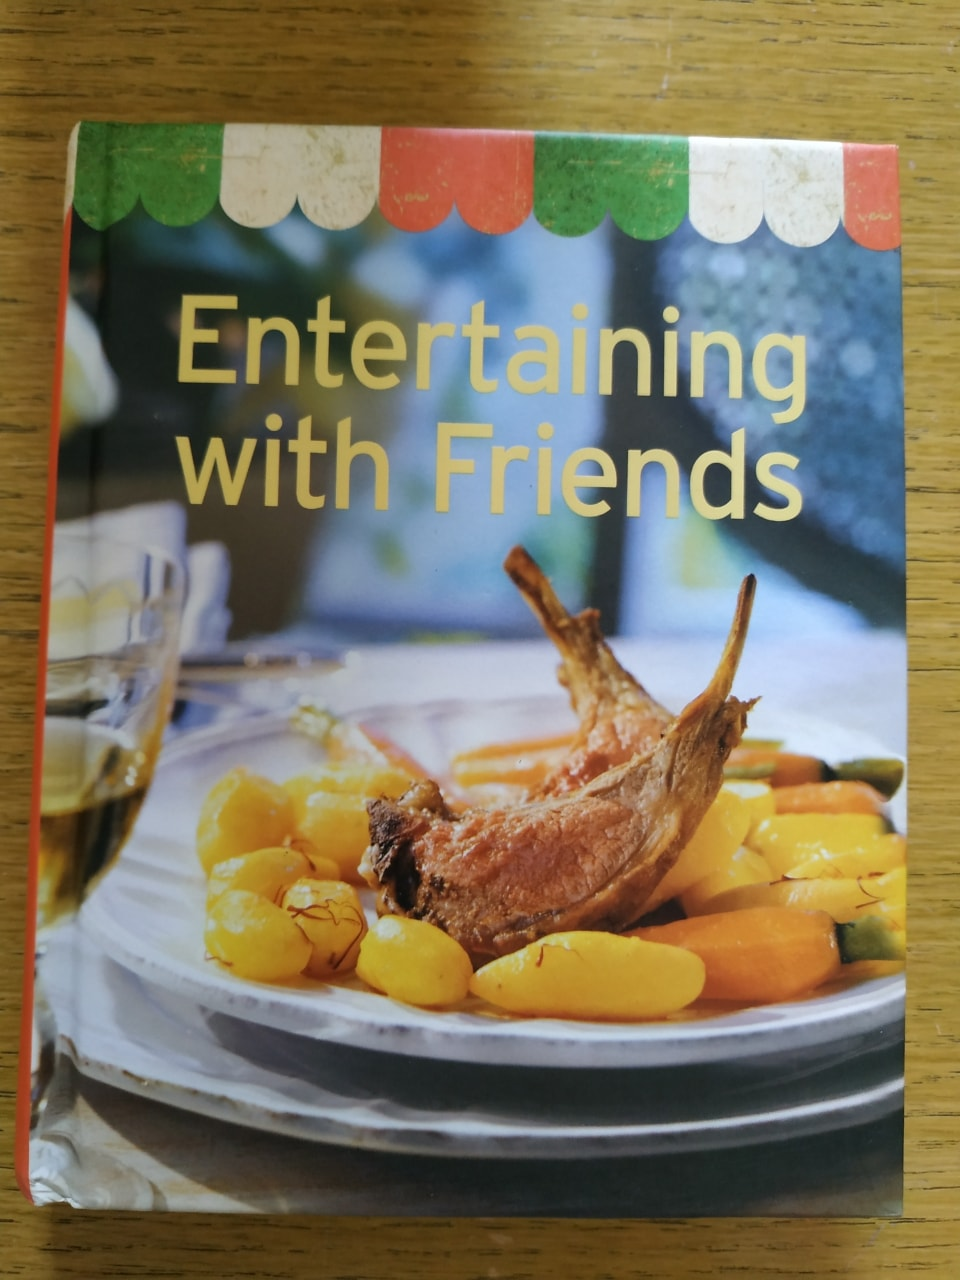 Book - Entertaining with friends